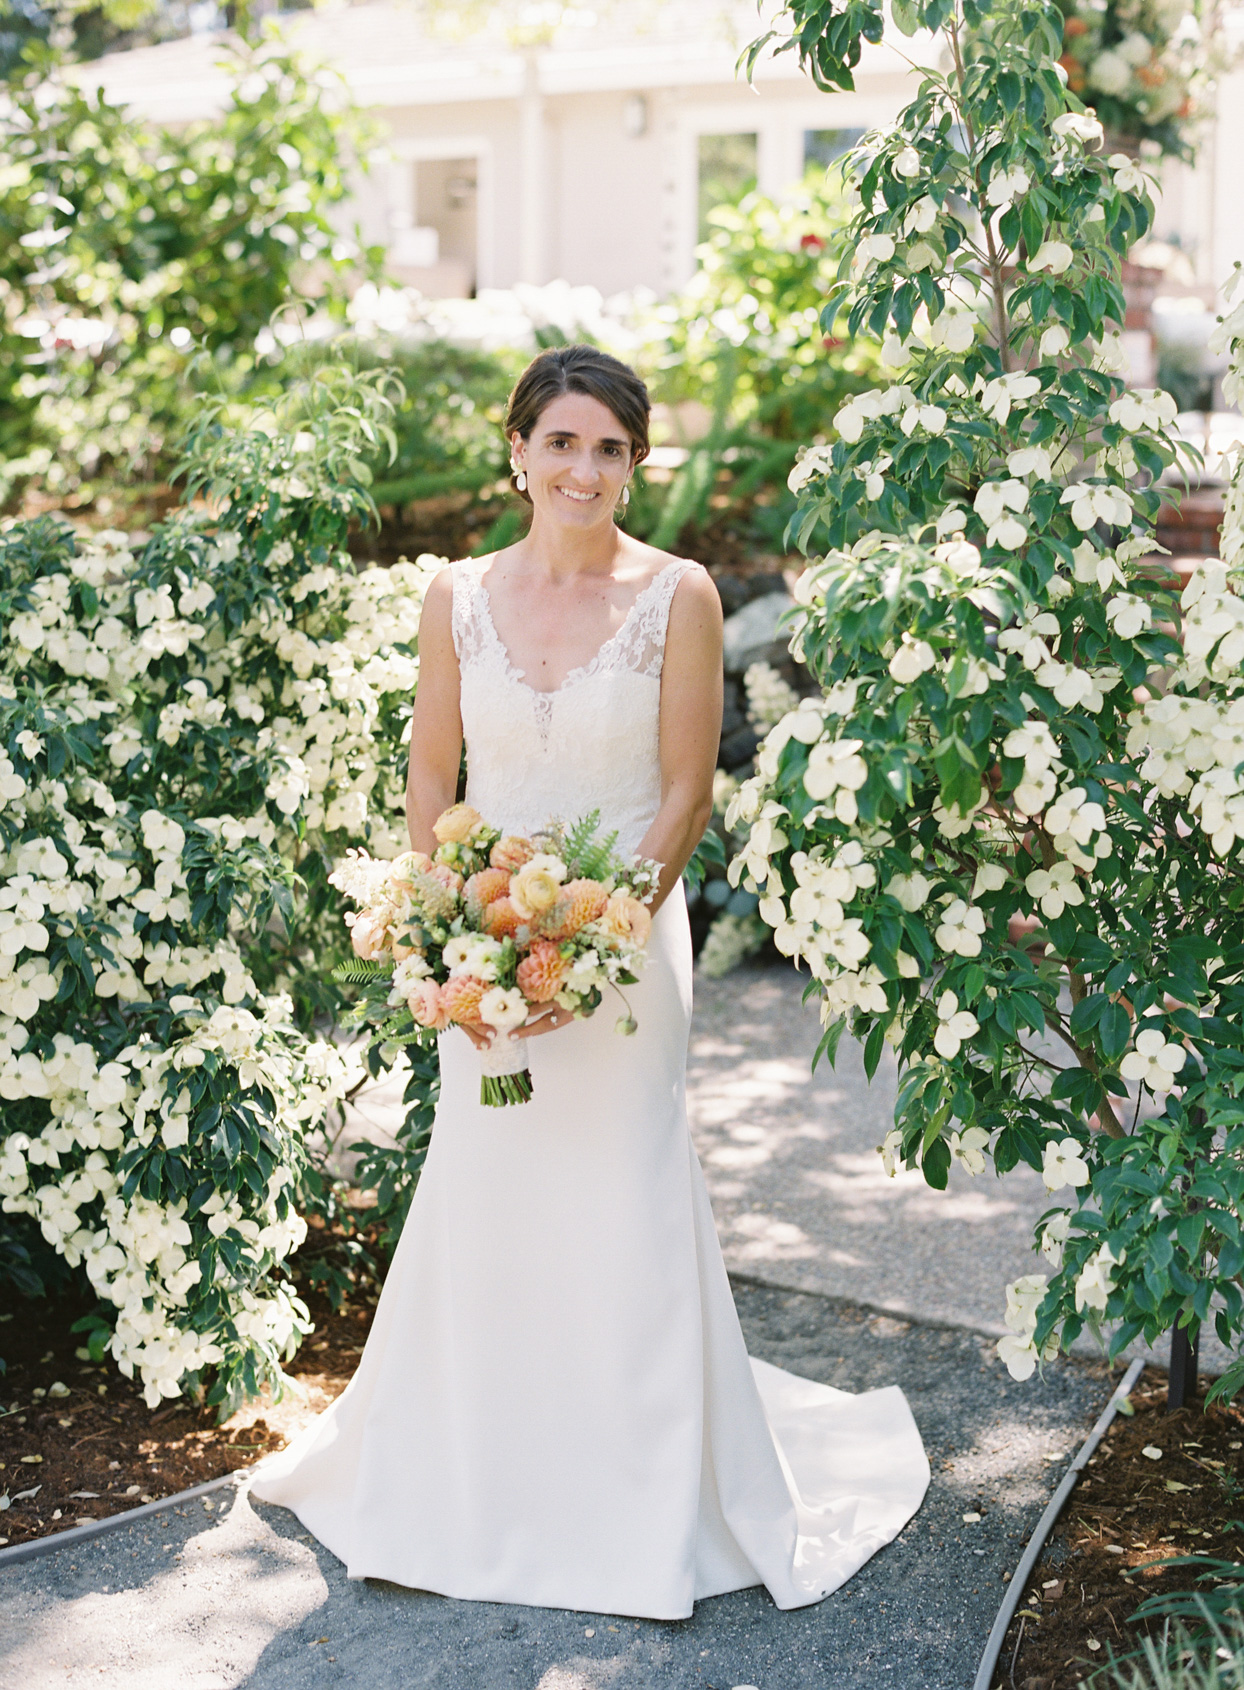 bride standing on path between white floral bushes